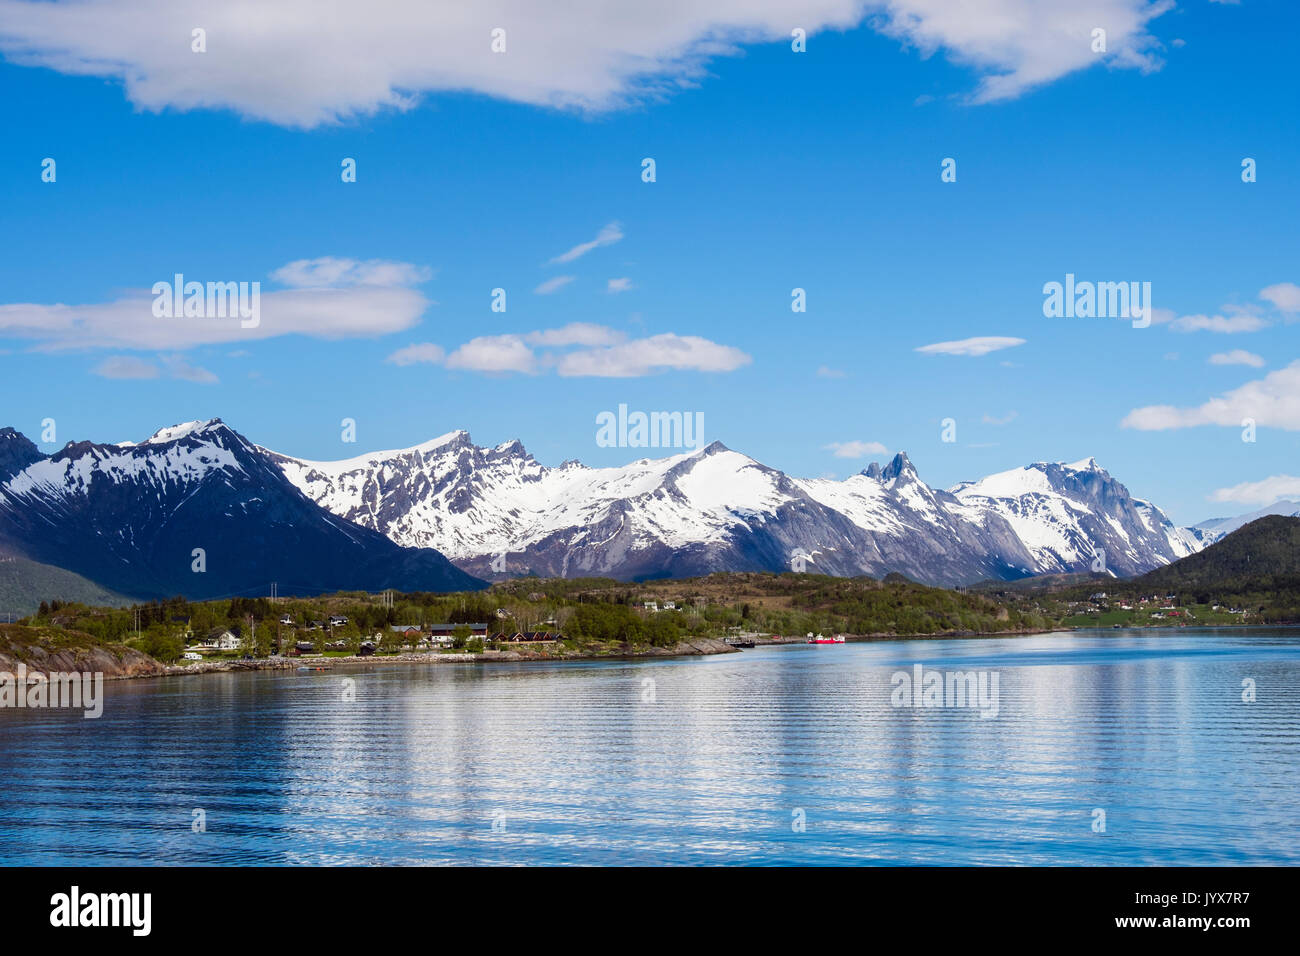 Offshore view to snow-capped mountains and campsite beside Arhaugfjorden fjord on Norwegian north west coast in summer. Furoy, Meløy, Nordland, Norway - Stock Image